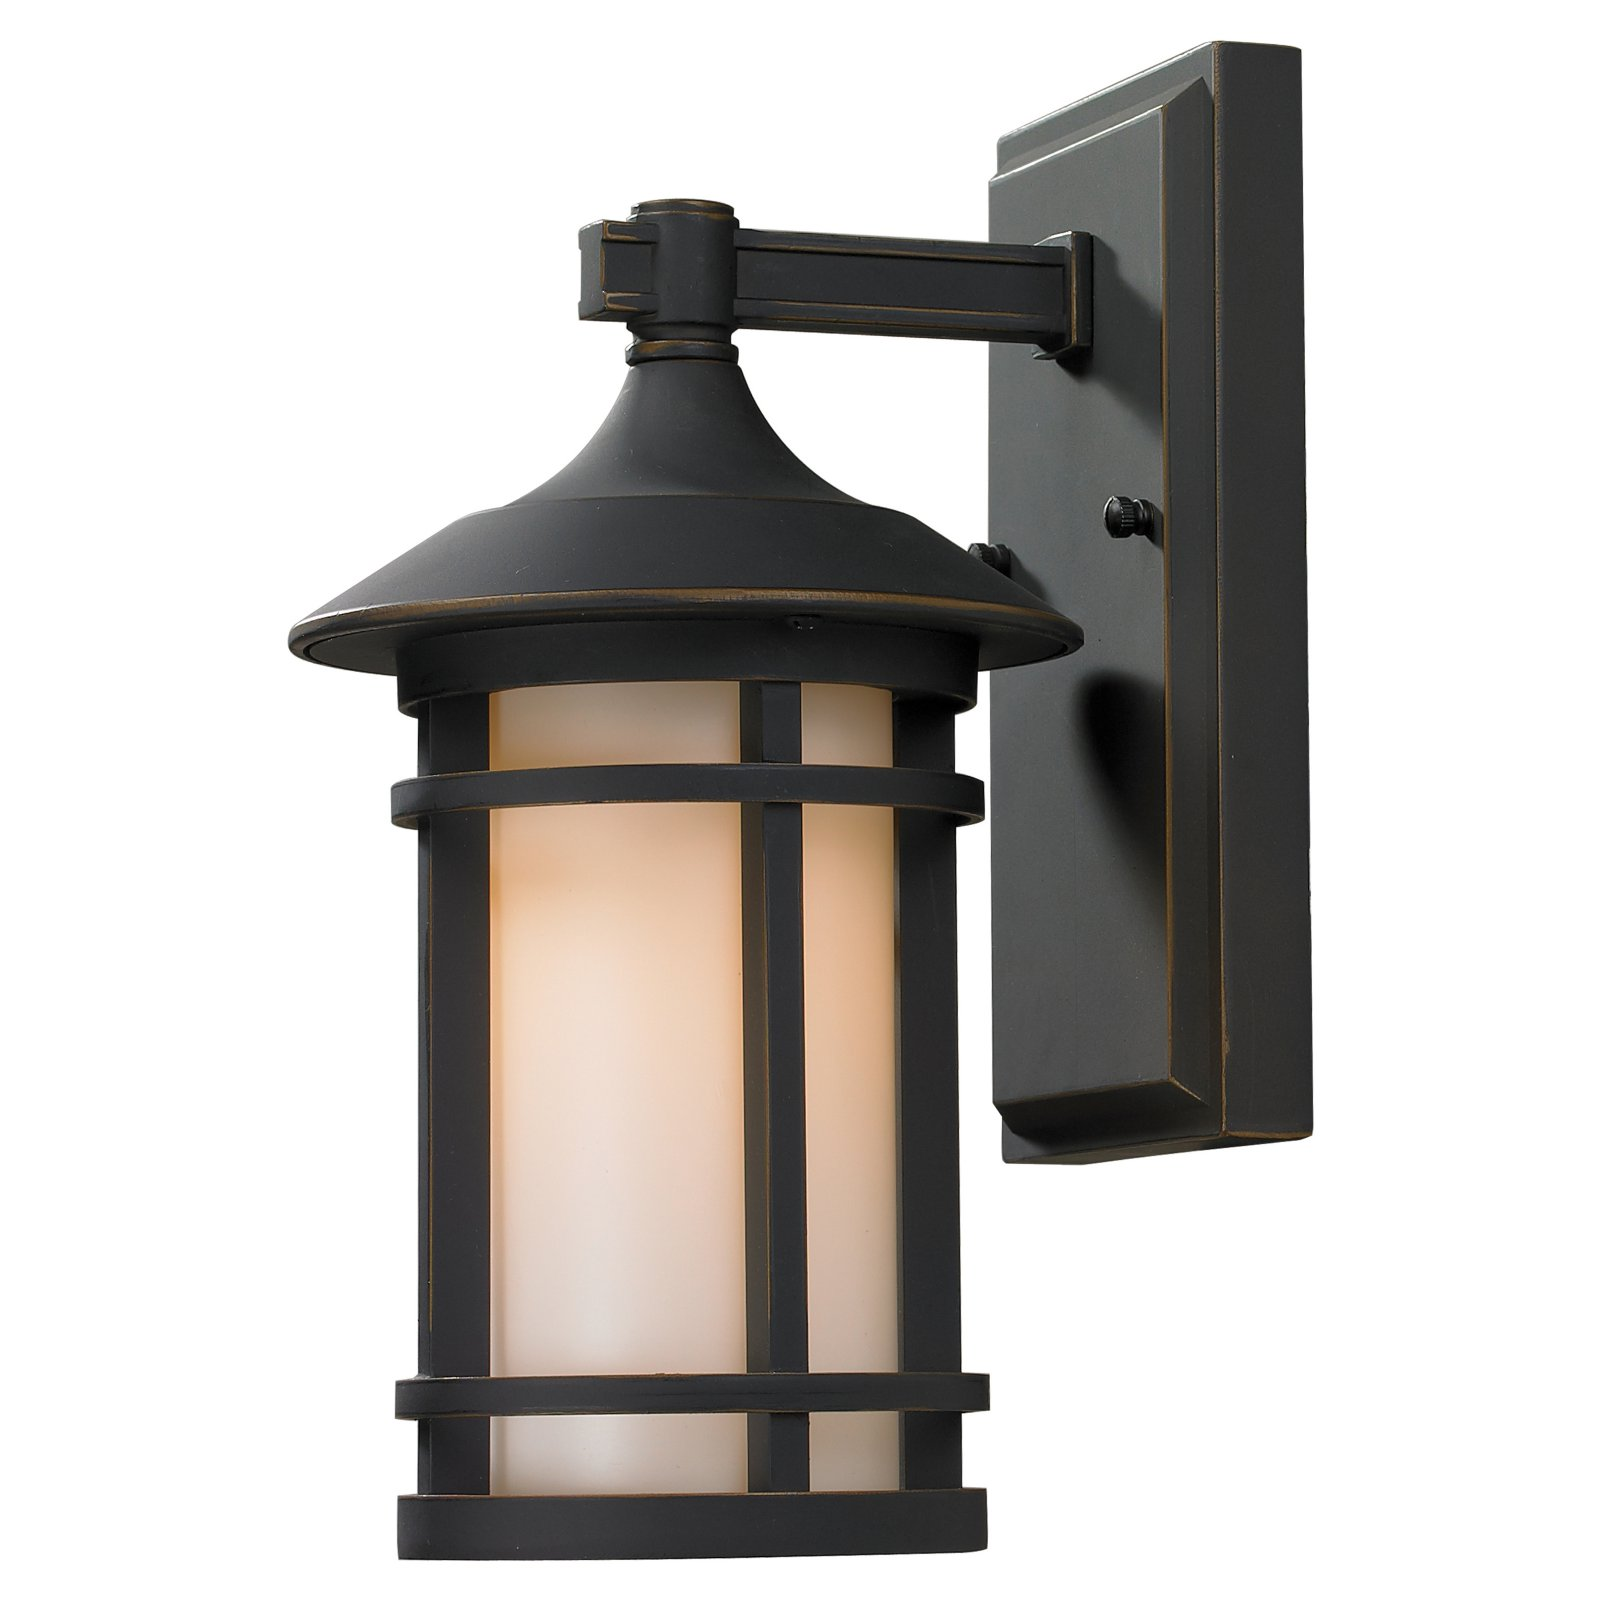 Z-Lite 528S Woodland 1-Light Outdoor Wall Sconce with Matte Opal Shade